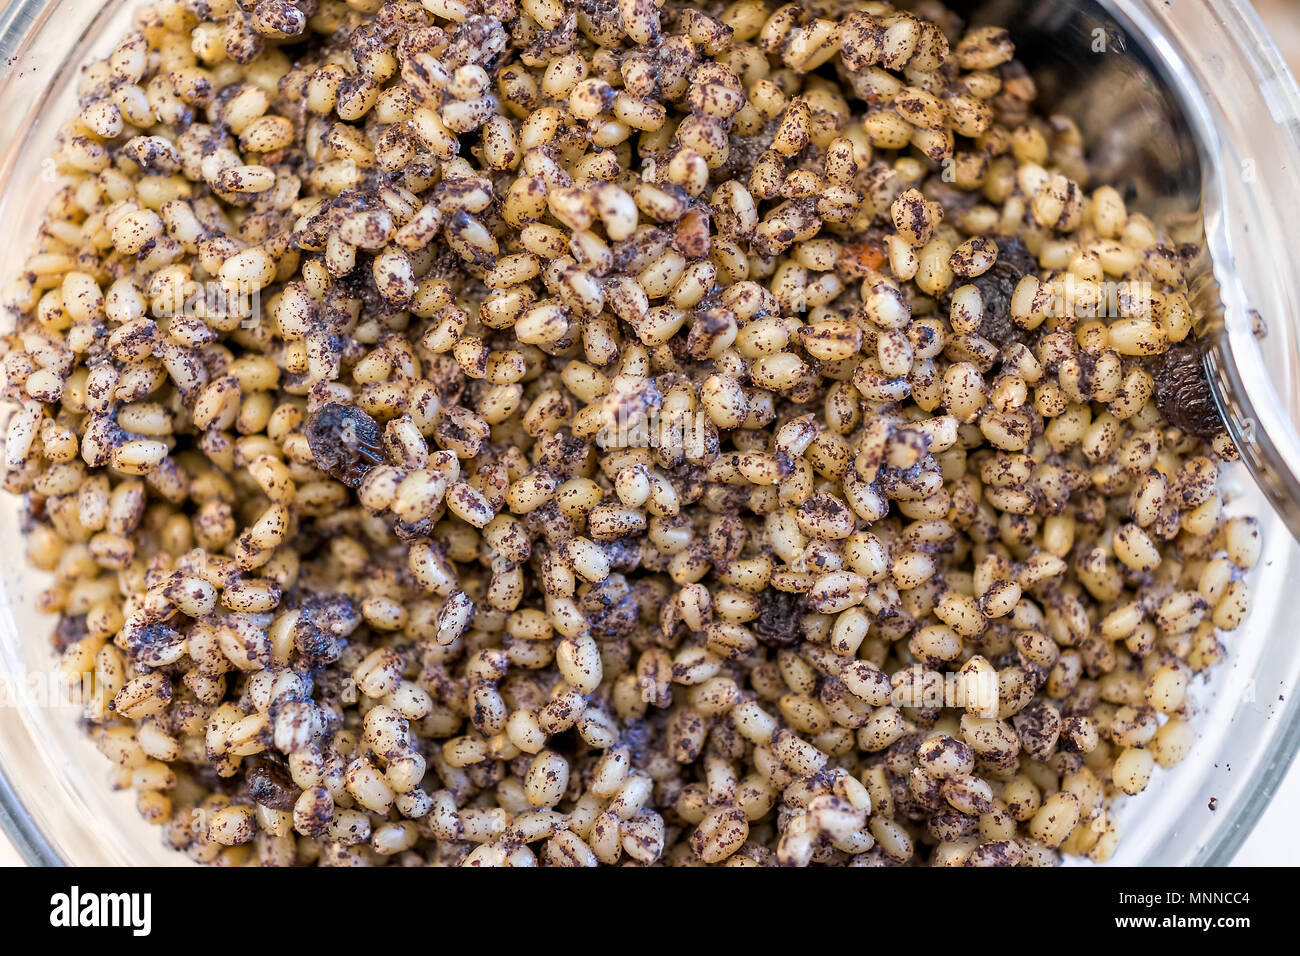 Kutya or kutia cereal dish, macro closeup, Russia and Ukraine Christmas Eve traditional meal, made from wheat berries, poppy seeds, raisins and honey, - Stock Image